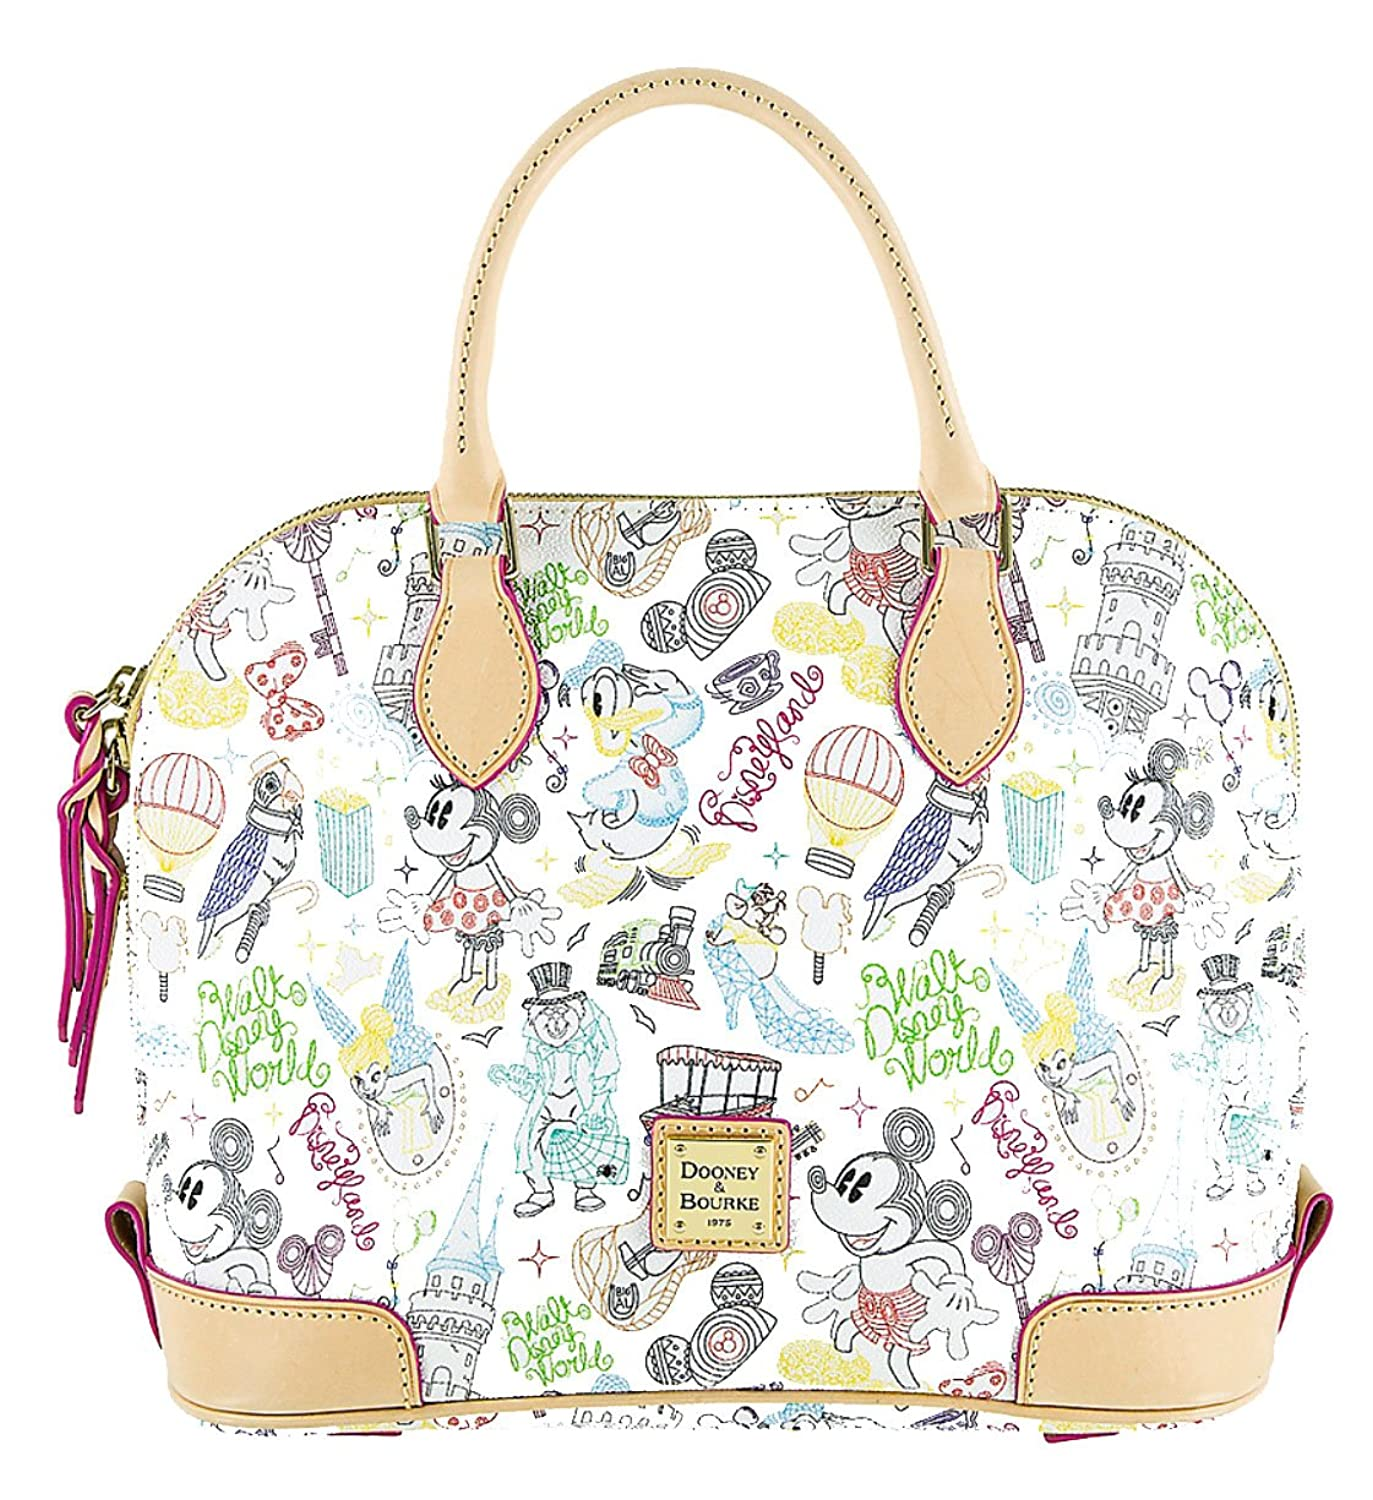 Disney Parks Dooney & Bourke Bag - A Walk In the Park - Passholder Satchel  Purse: Handbags: Amazon.com